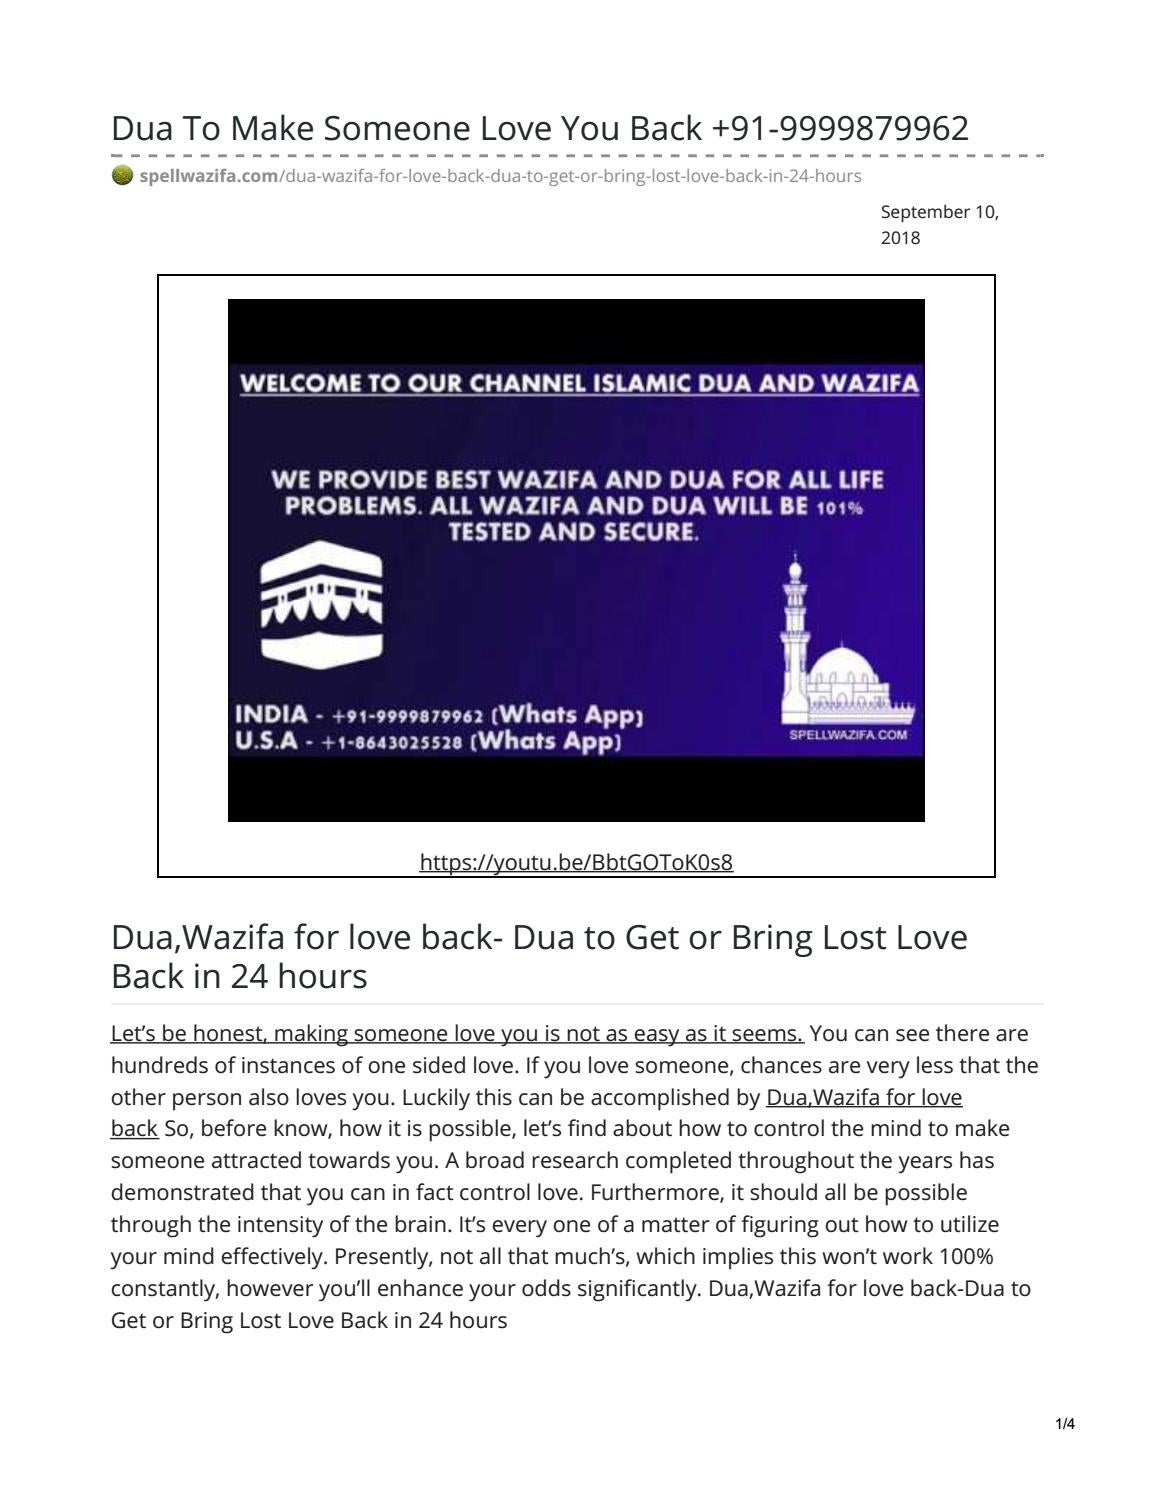 Dua,Wazifa for love back- Dua to Get or Bring Lost Love Back